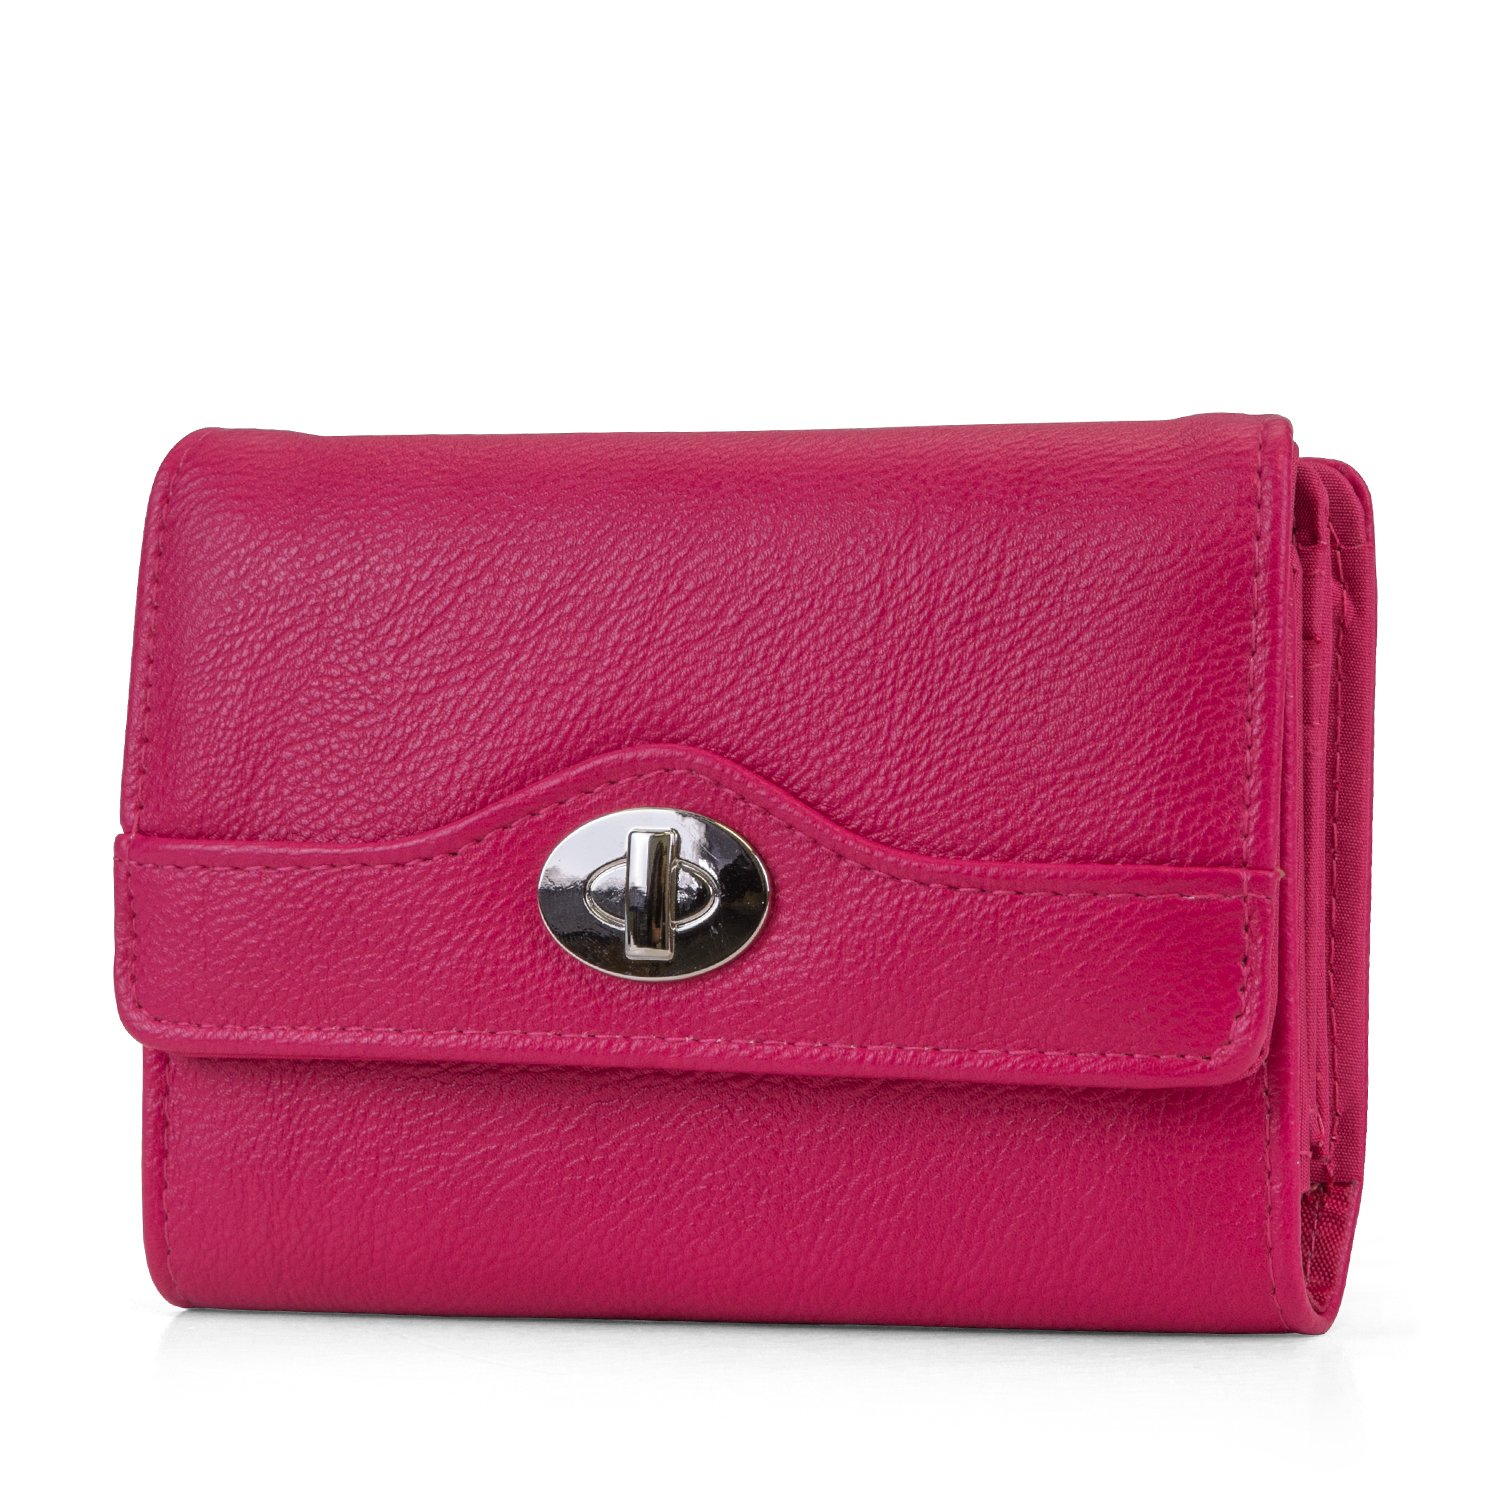 Mundi Small Womens RFID Blocking Wallet Compact Trifold Safe Protection Clutch With Change Purse (Raspberry)